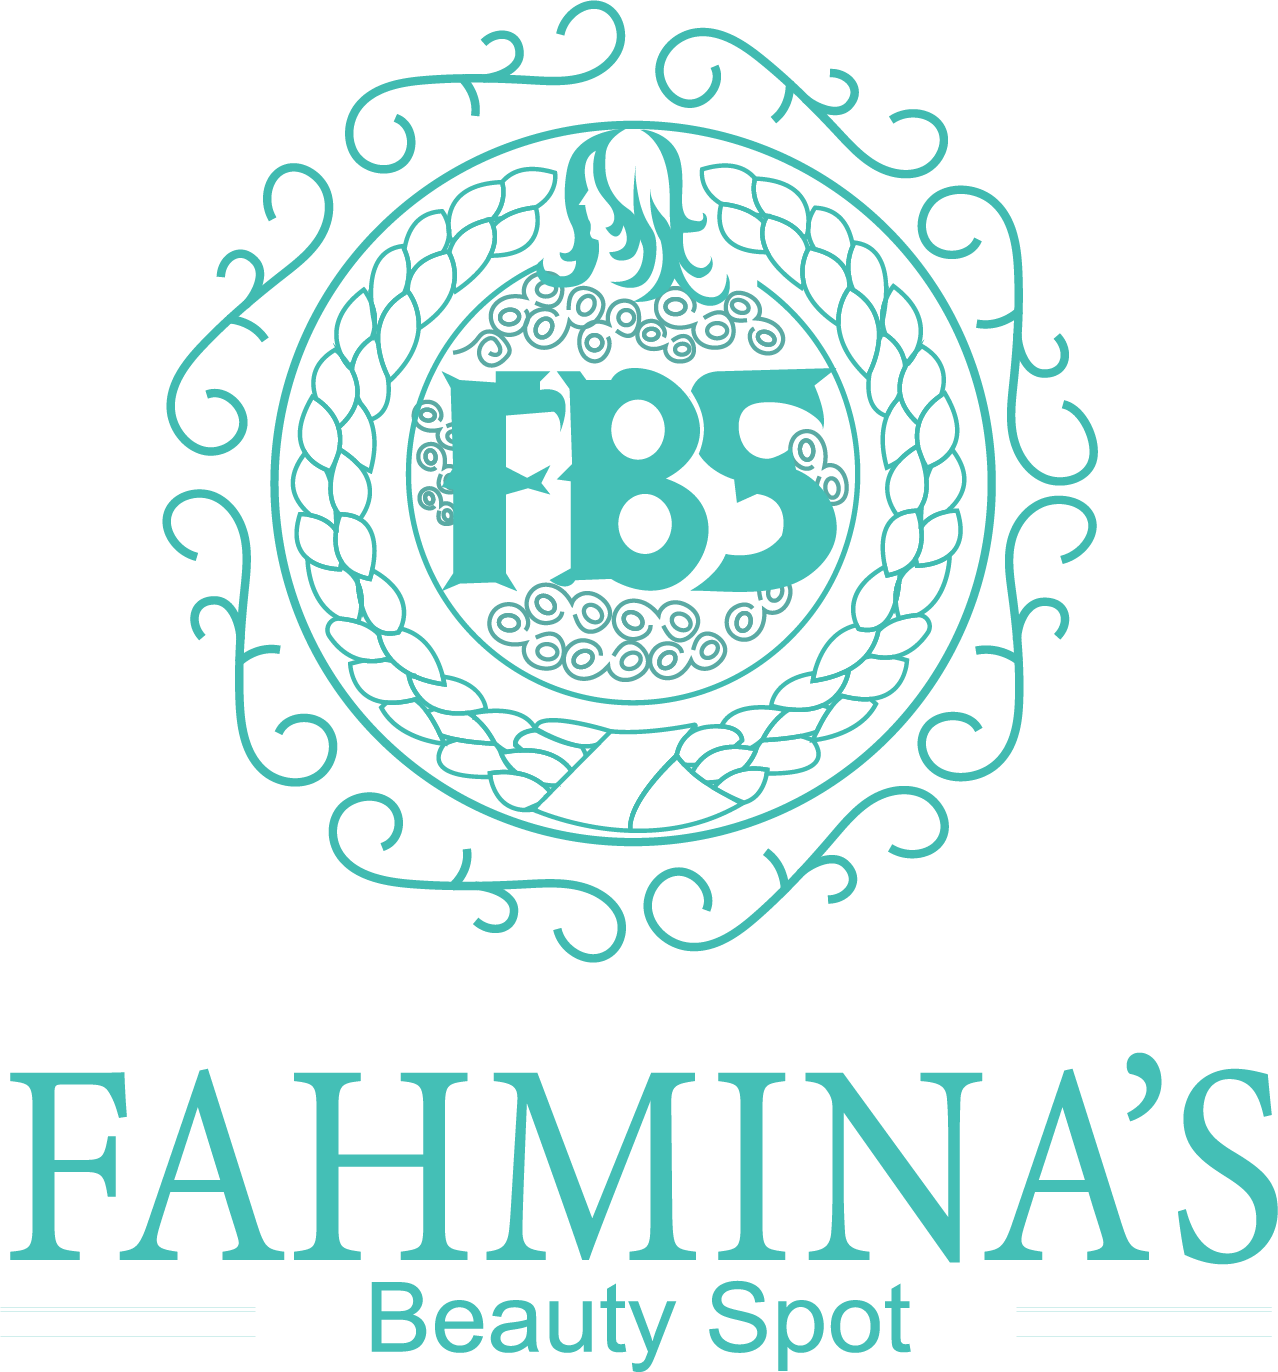 Fahminas Beauty Spot